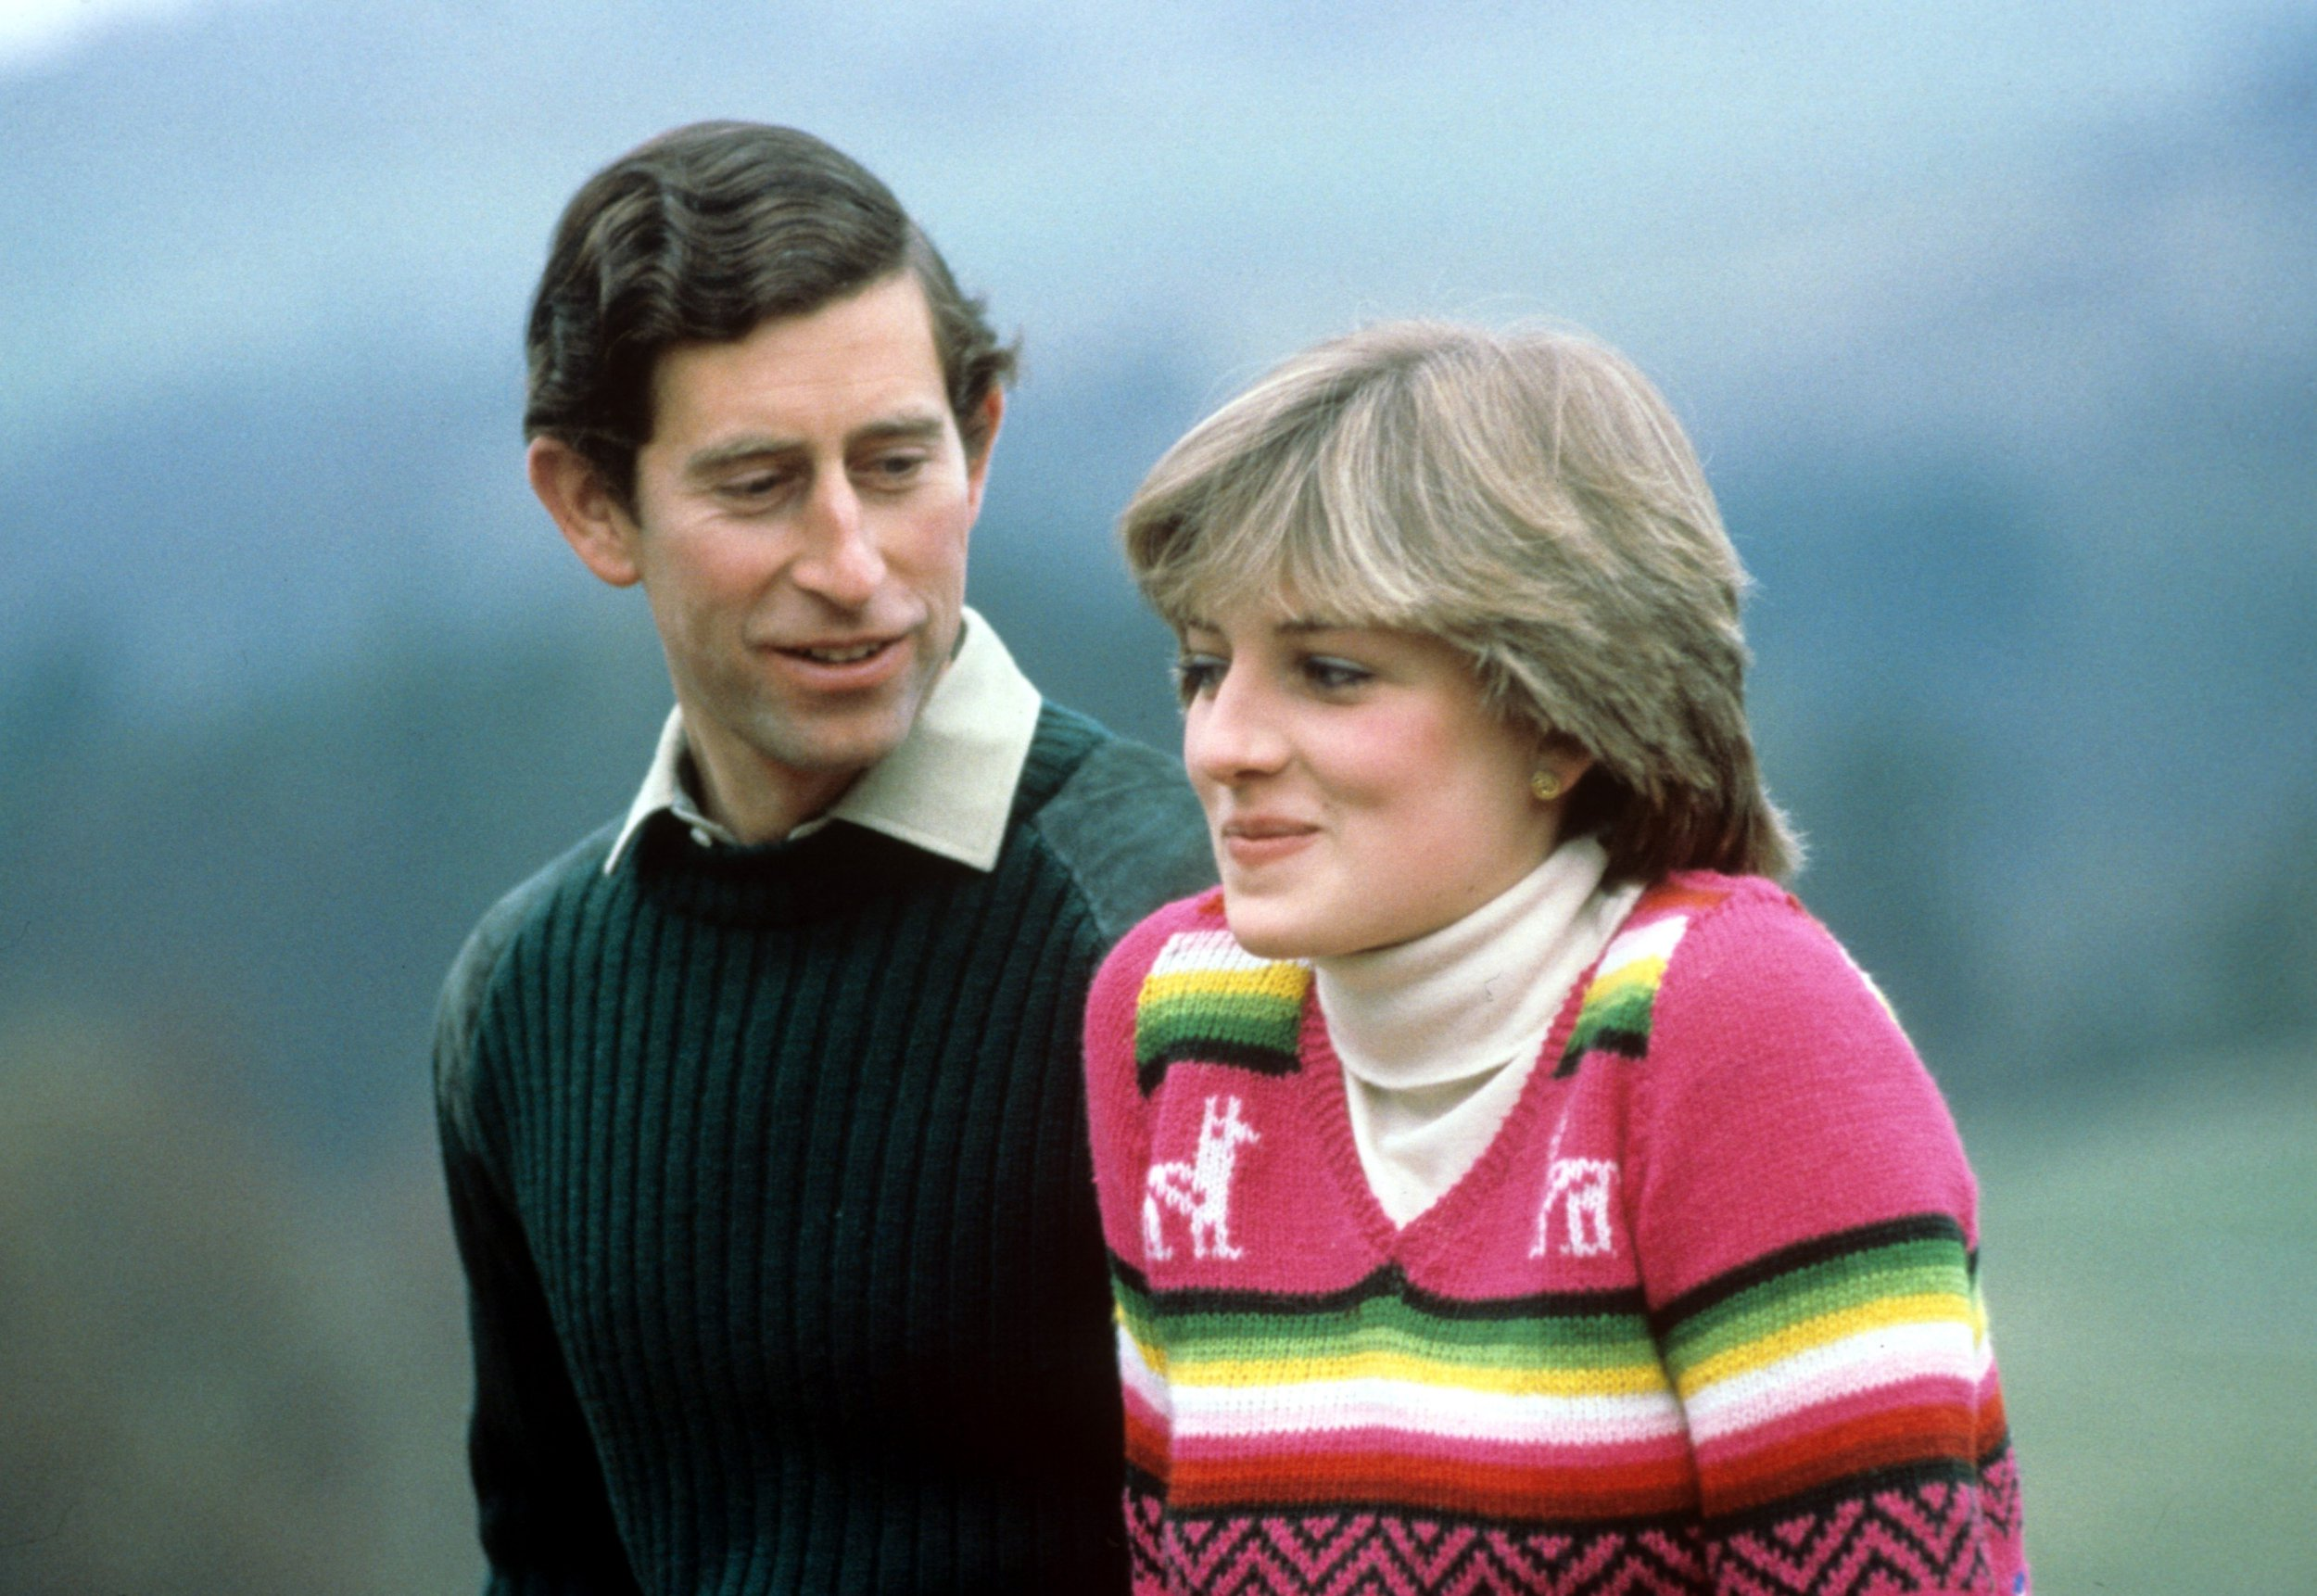 Mandatory Credit: Photo by BRYN COLTON/REX/Shutterstock (208960v) PRINCE CHARLES AND LADY DIANA SPENCER IN THE GROUNDS OF BALMORAL CASTLE SCOTLAND ON A PRE HONEYMOON - 1 MAY 1981 British Royals - 1980s